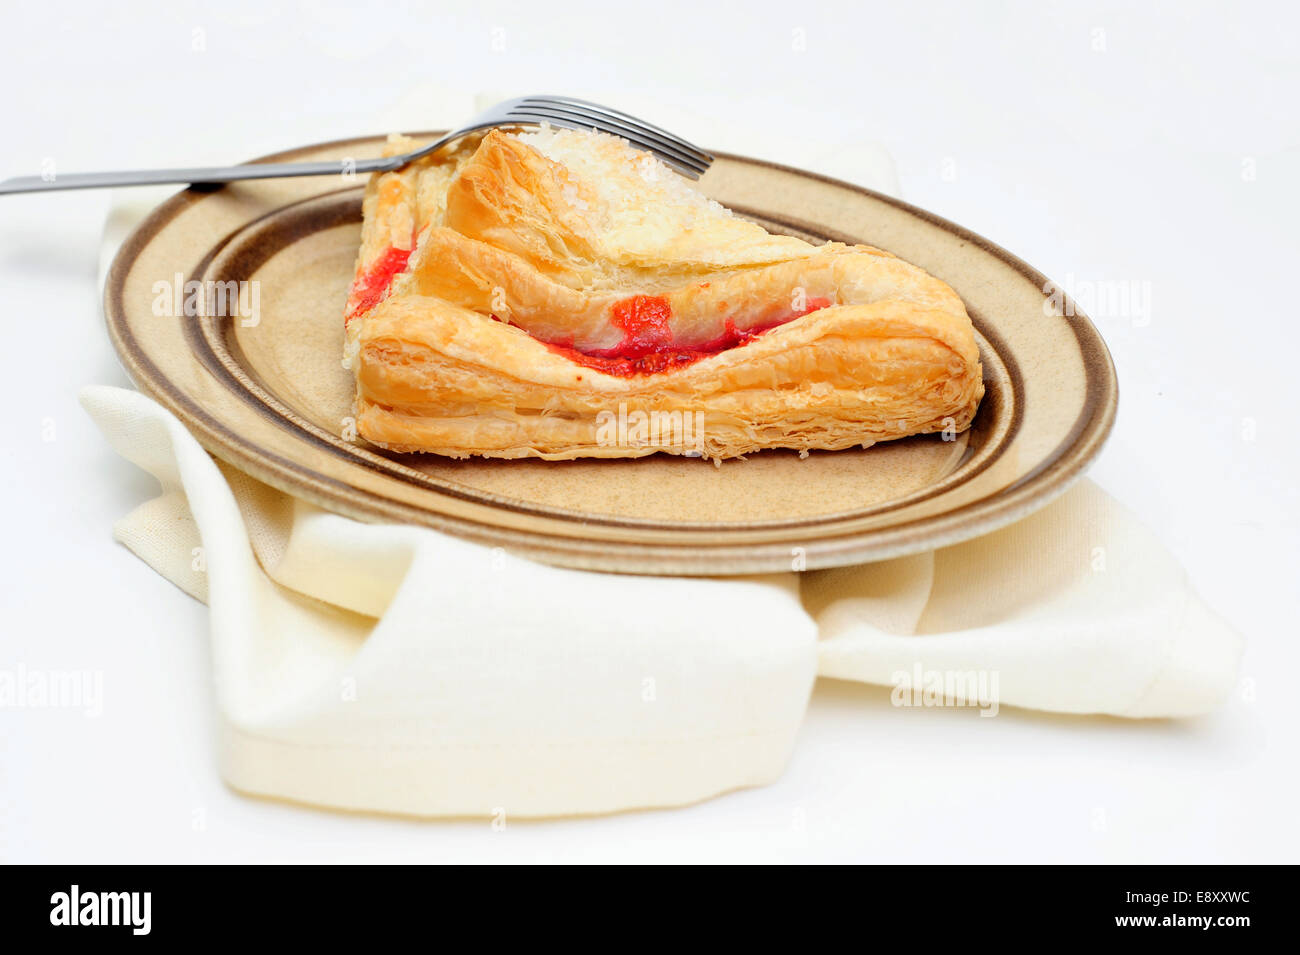 Cherry Turnover Side View - Stock Image